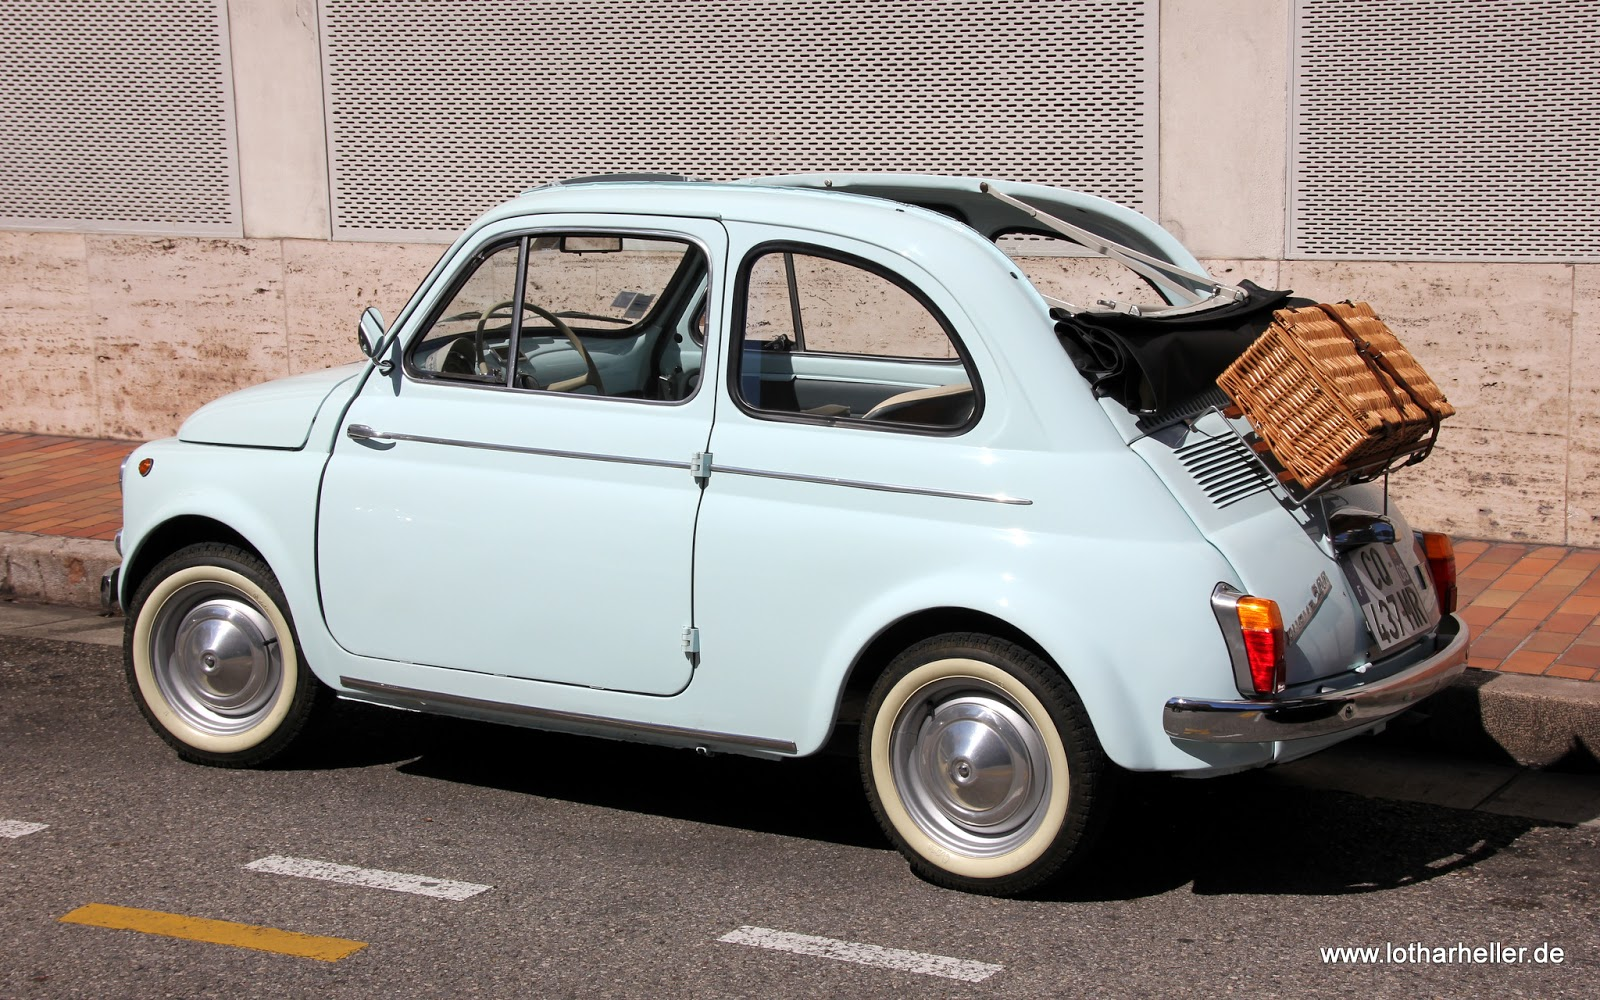 fiat 500 oldtimer free photo fiat 500 oldtimer ibiza car. Black Bedroom Furniture Sets. Home Design Ideas